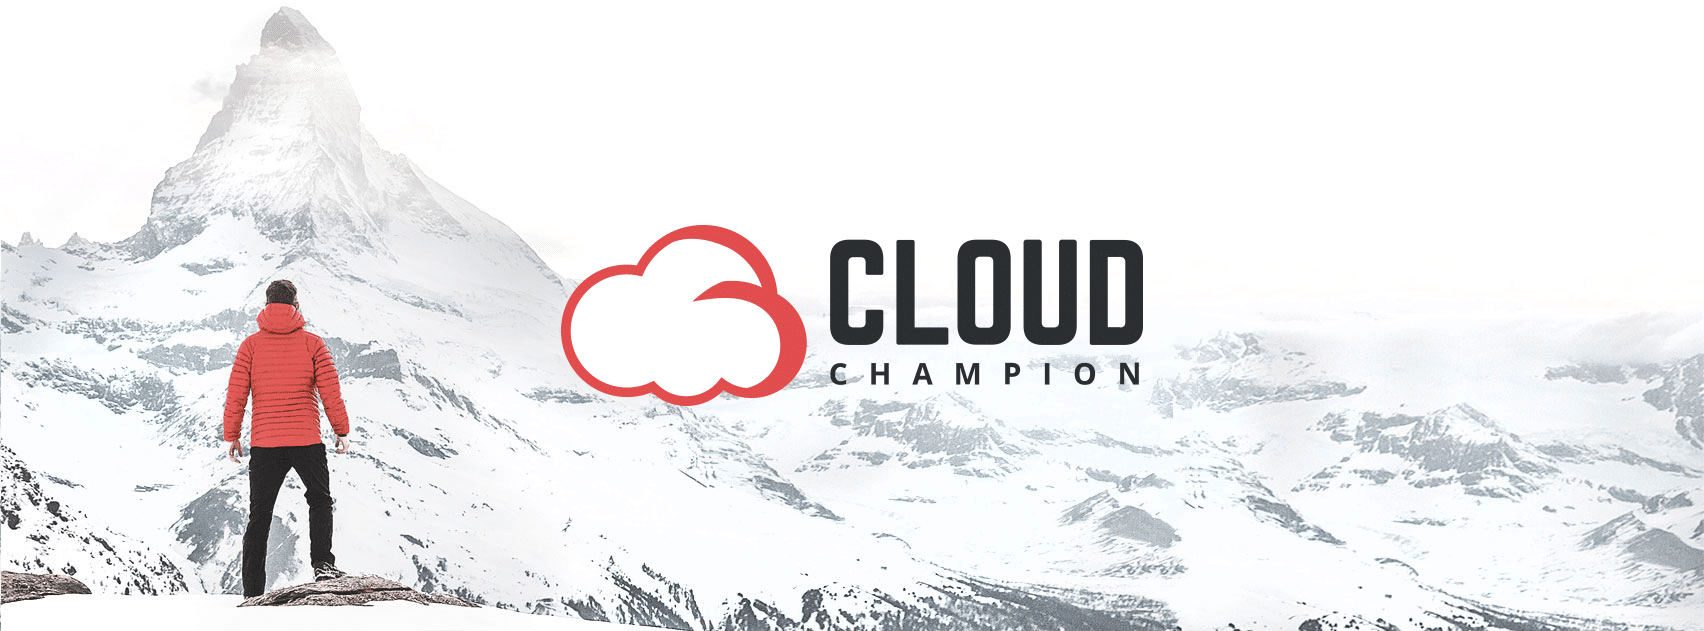 Cloud Champion